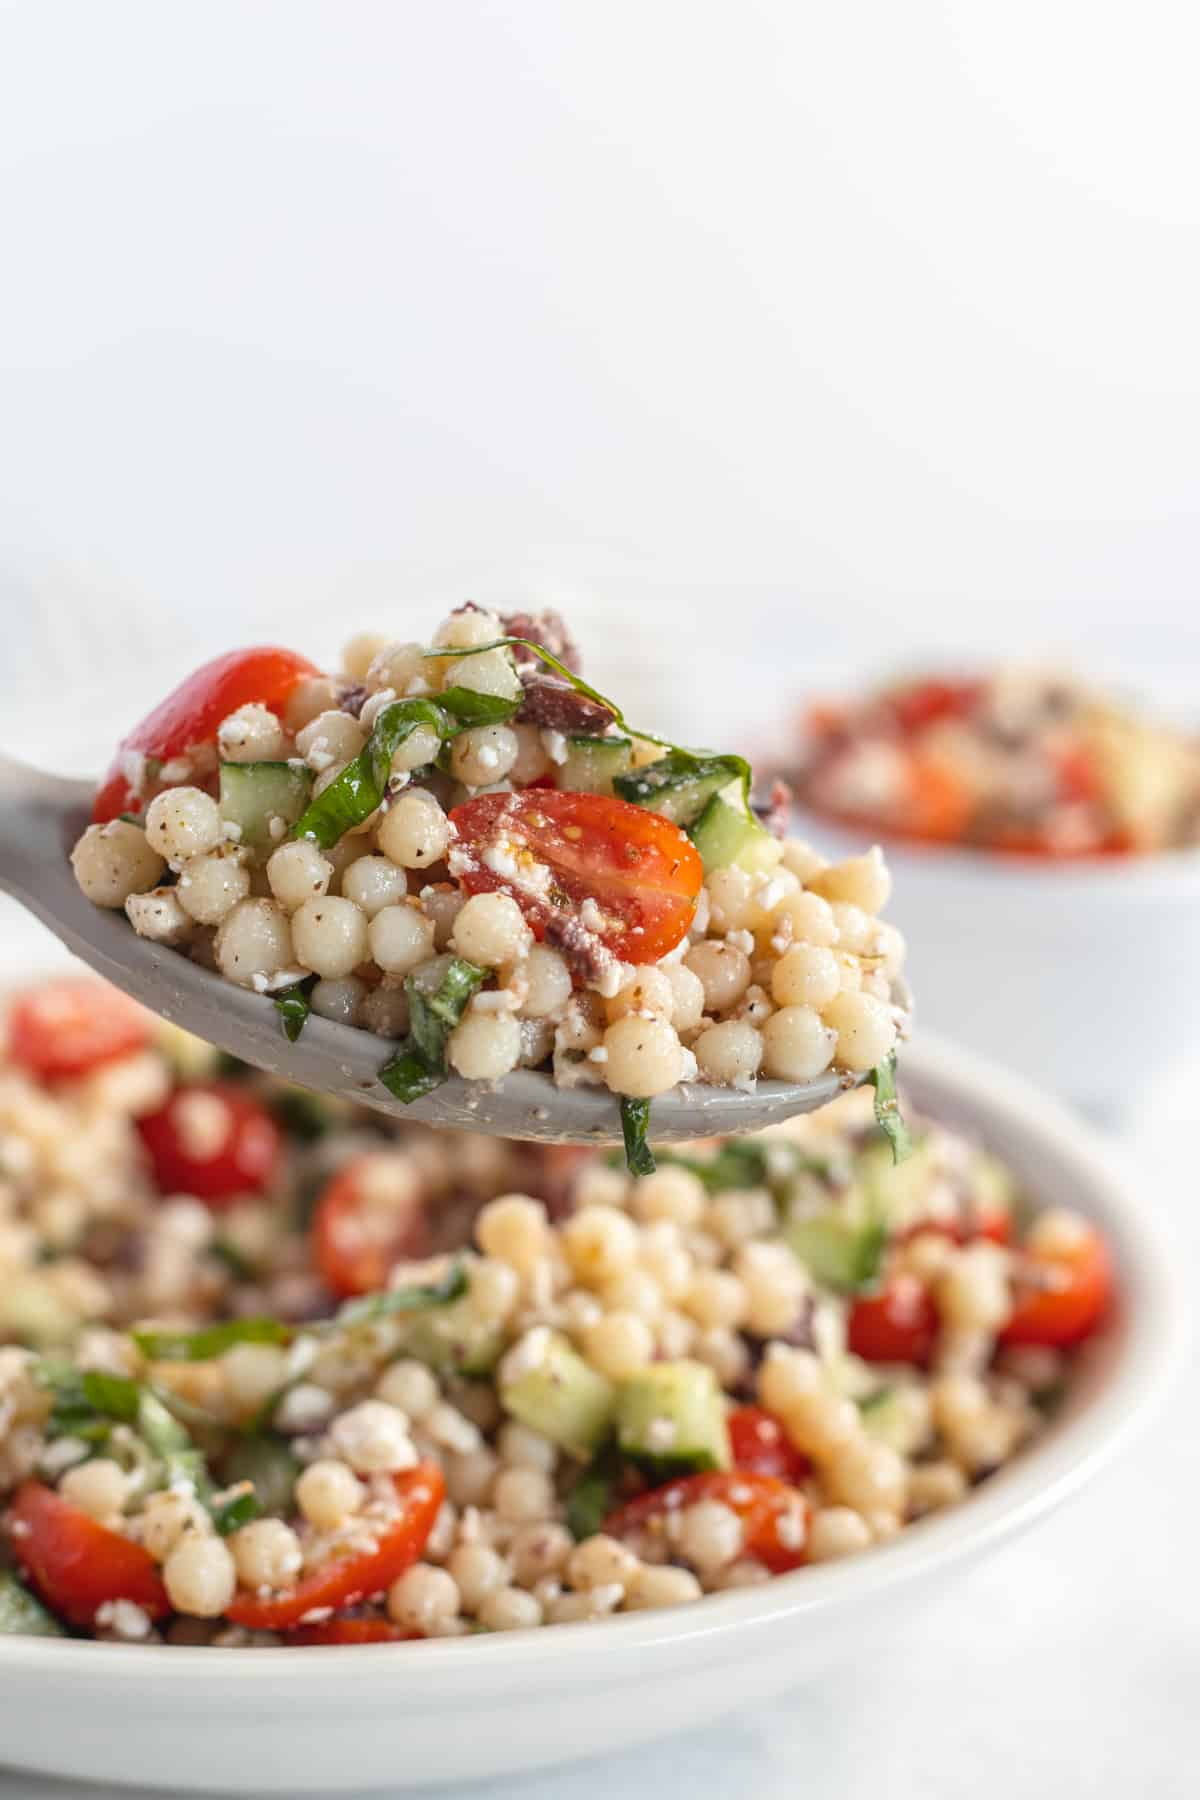 Serving spoon of the Pearl Couscous Salad